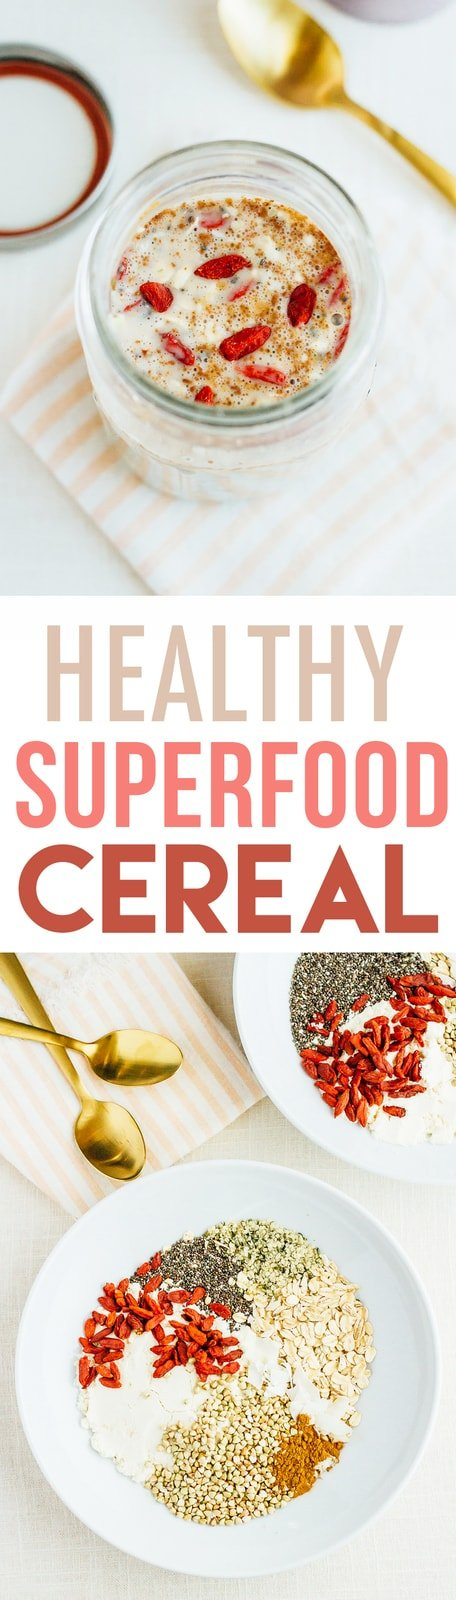 HEALTHY Homemade Superfood Cereal